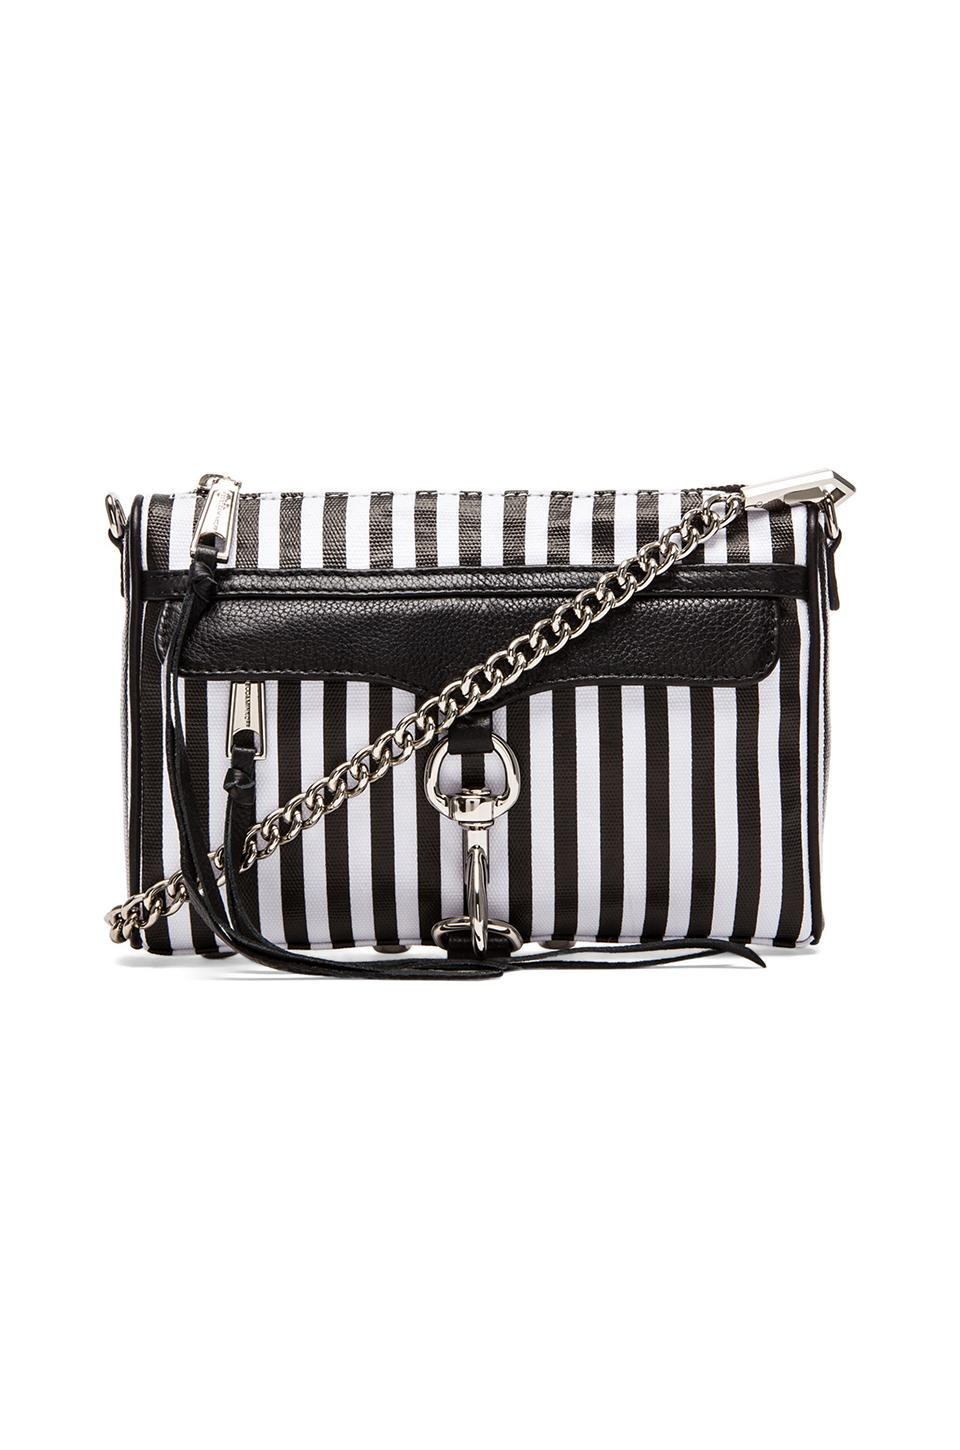 Rebecca Minkoff Mini Mac in Black & White Stripe